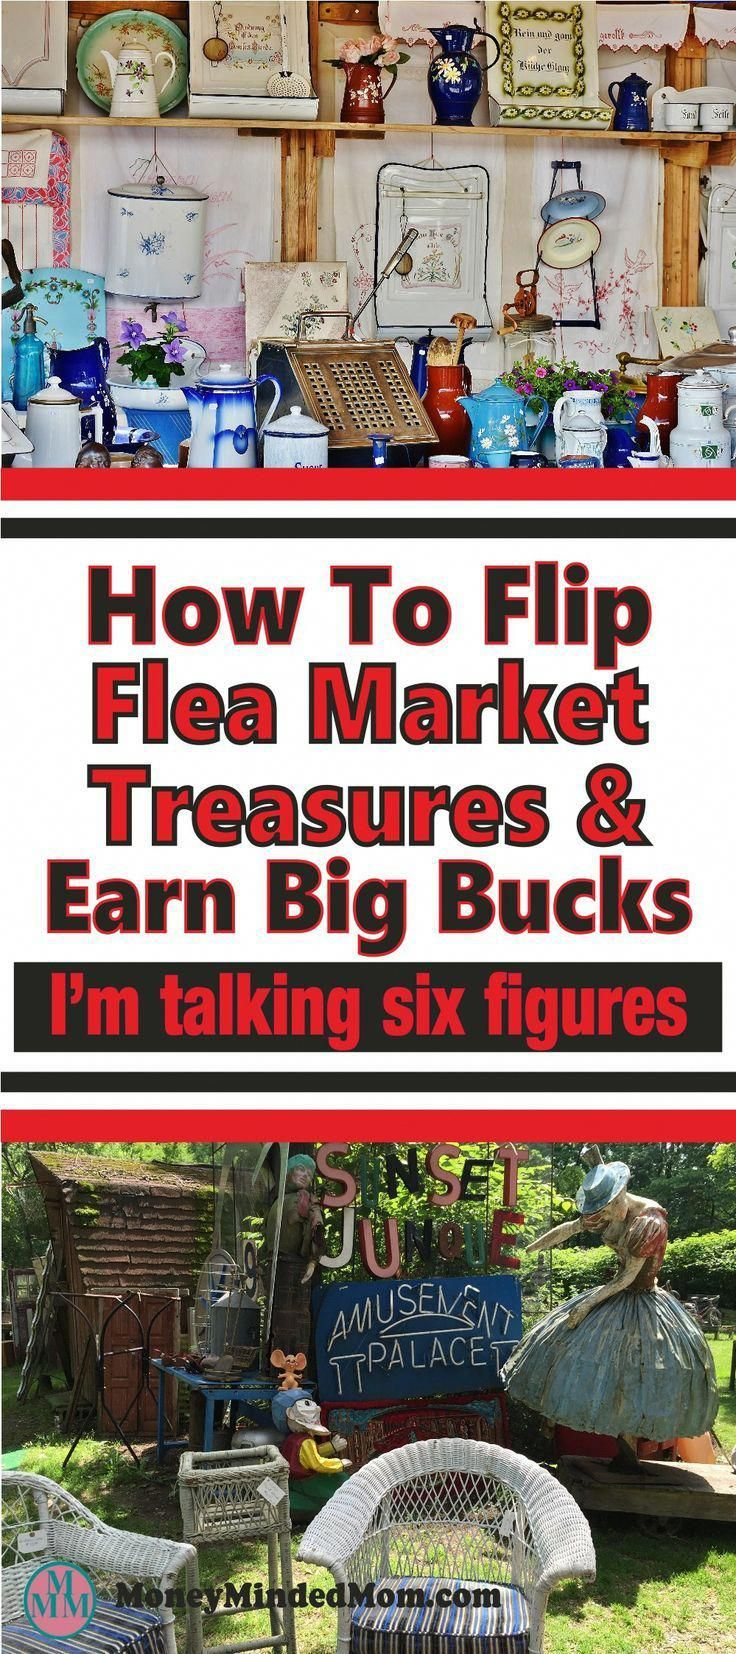 How this family makes over $100,000/yr Flea Market Flipping – Little of this